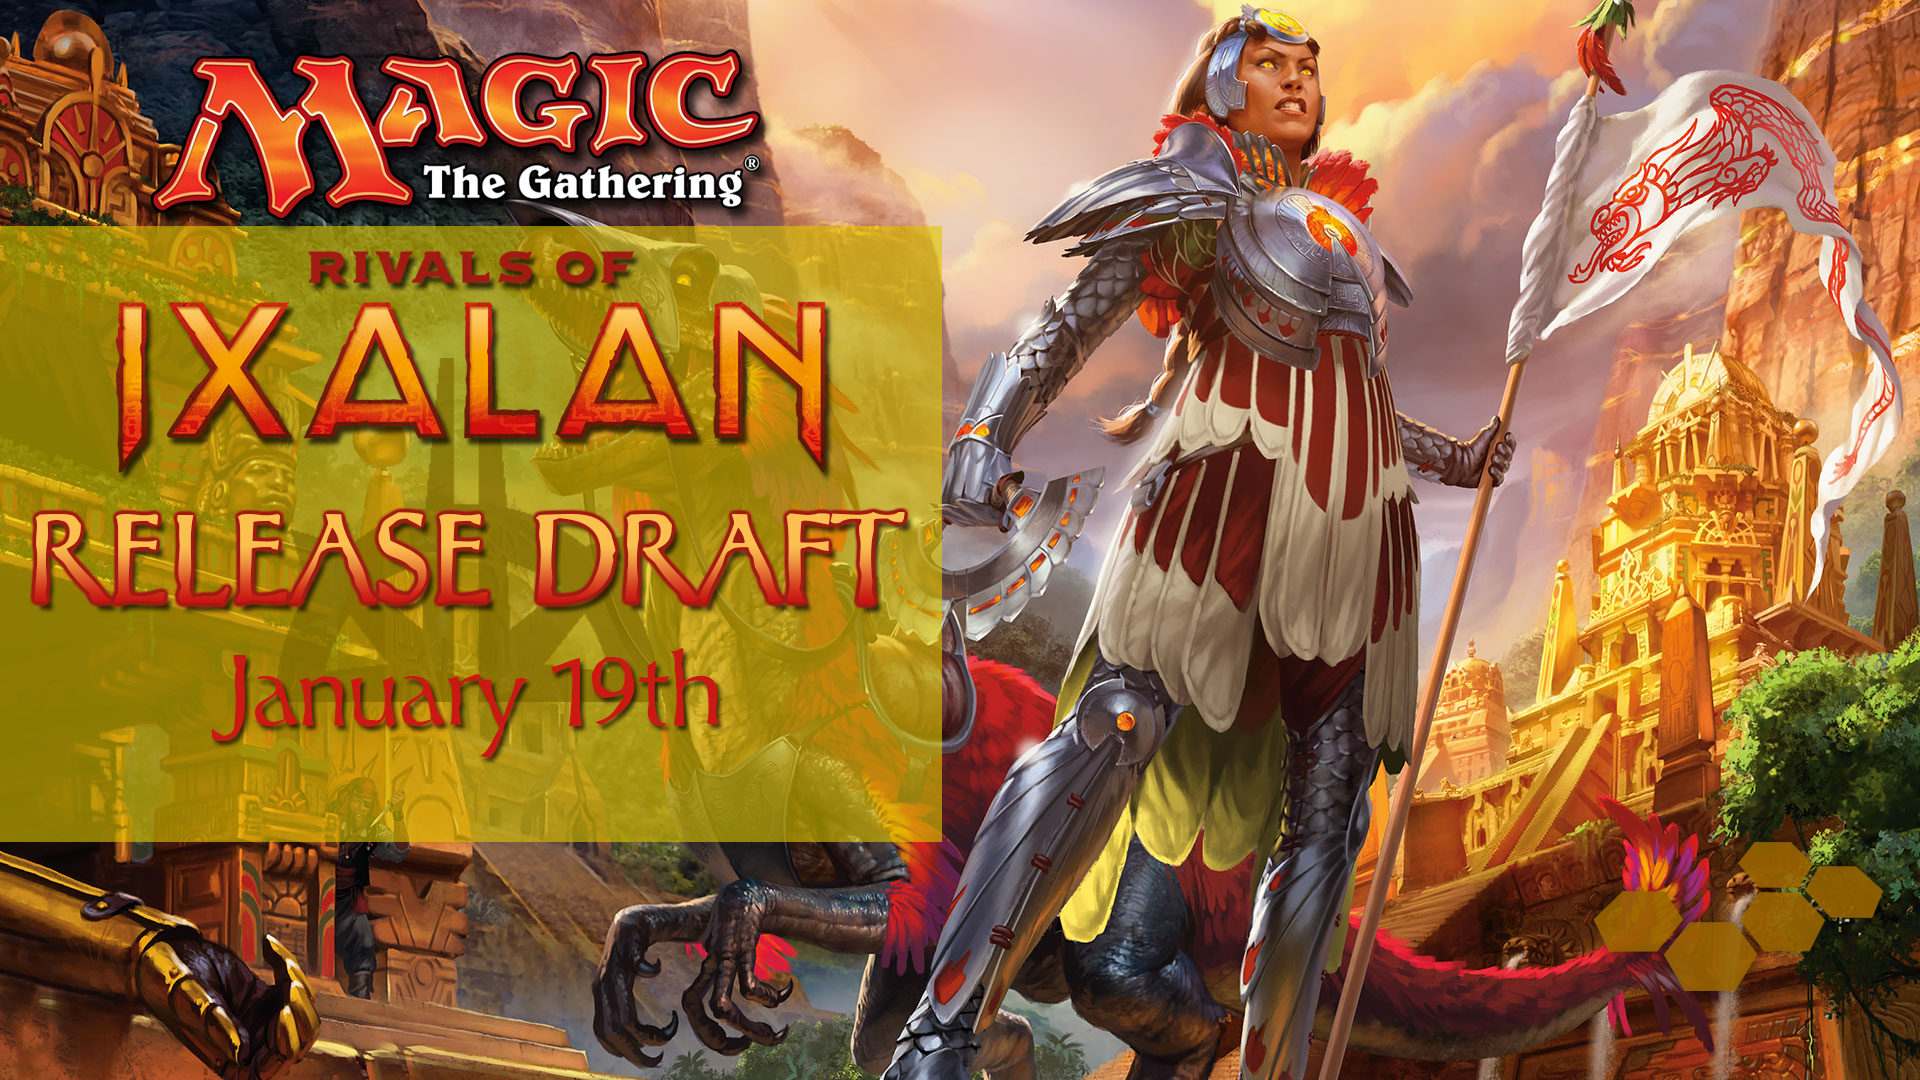 RIX Release Draft Event Image.png